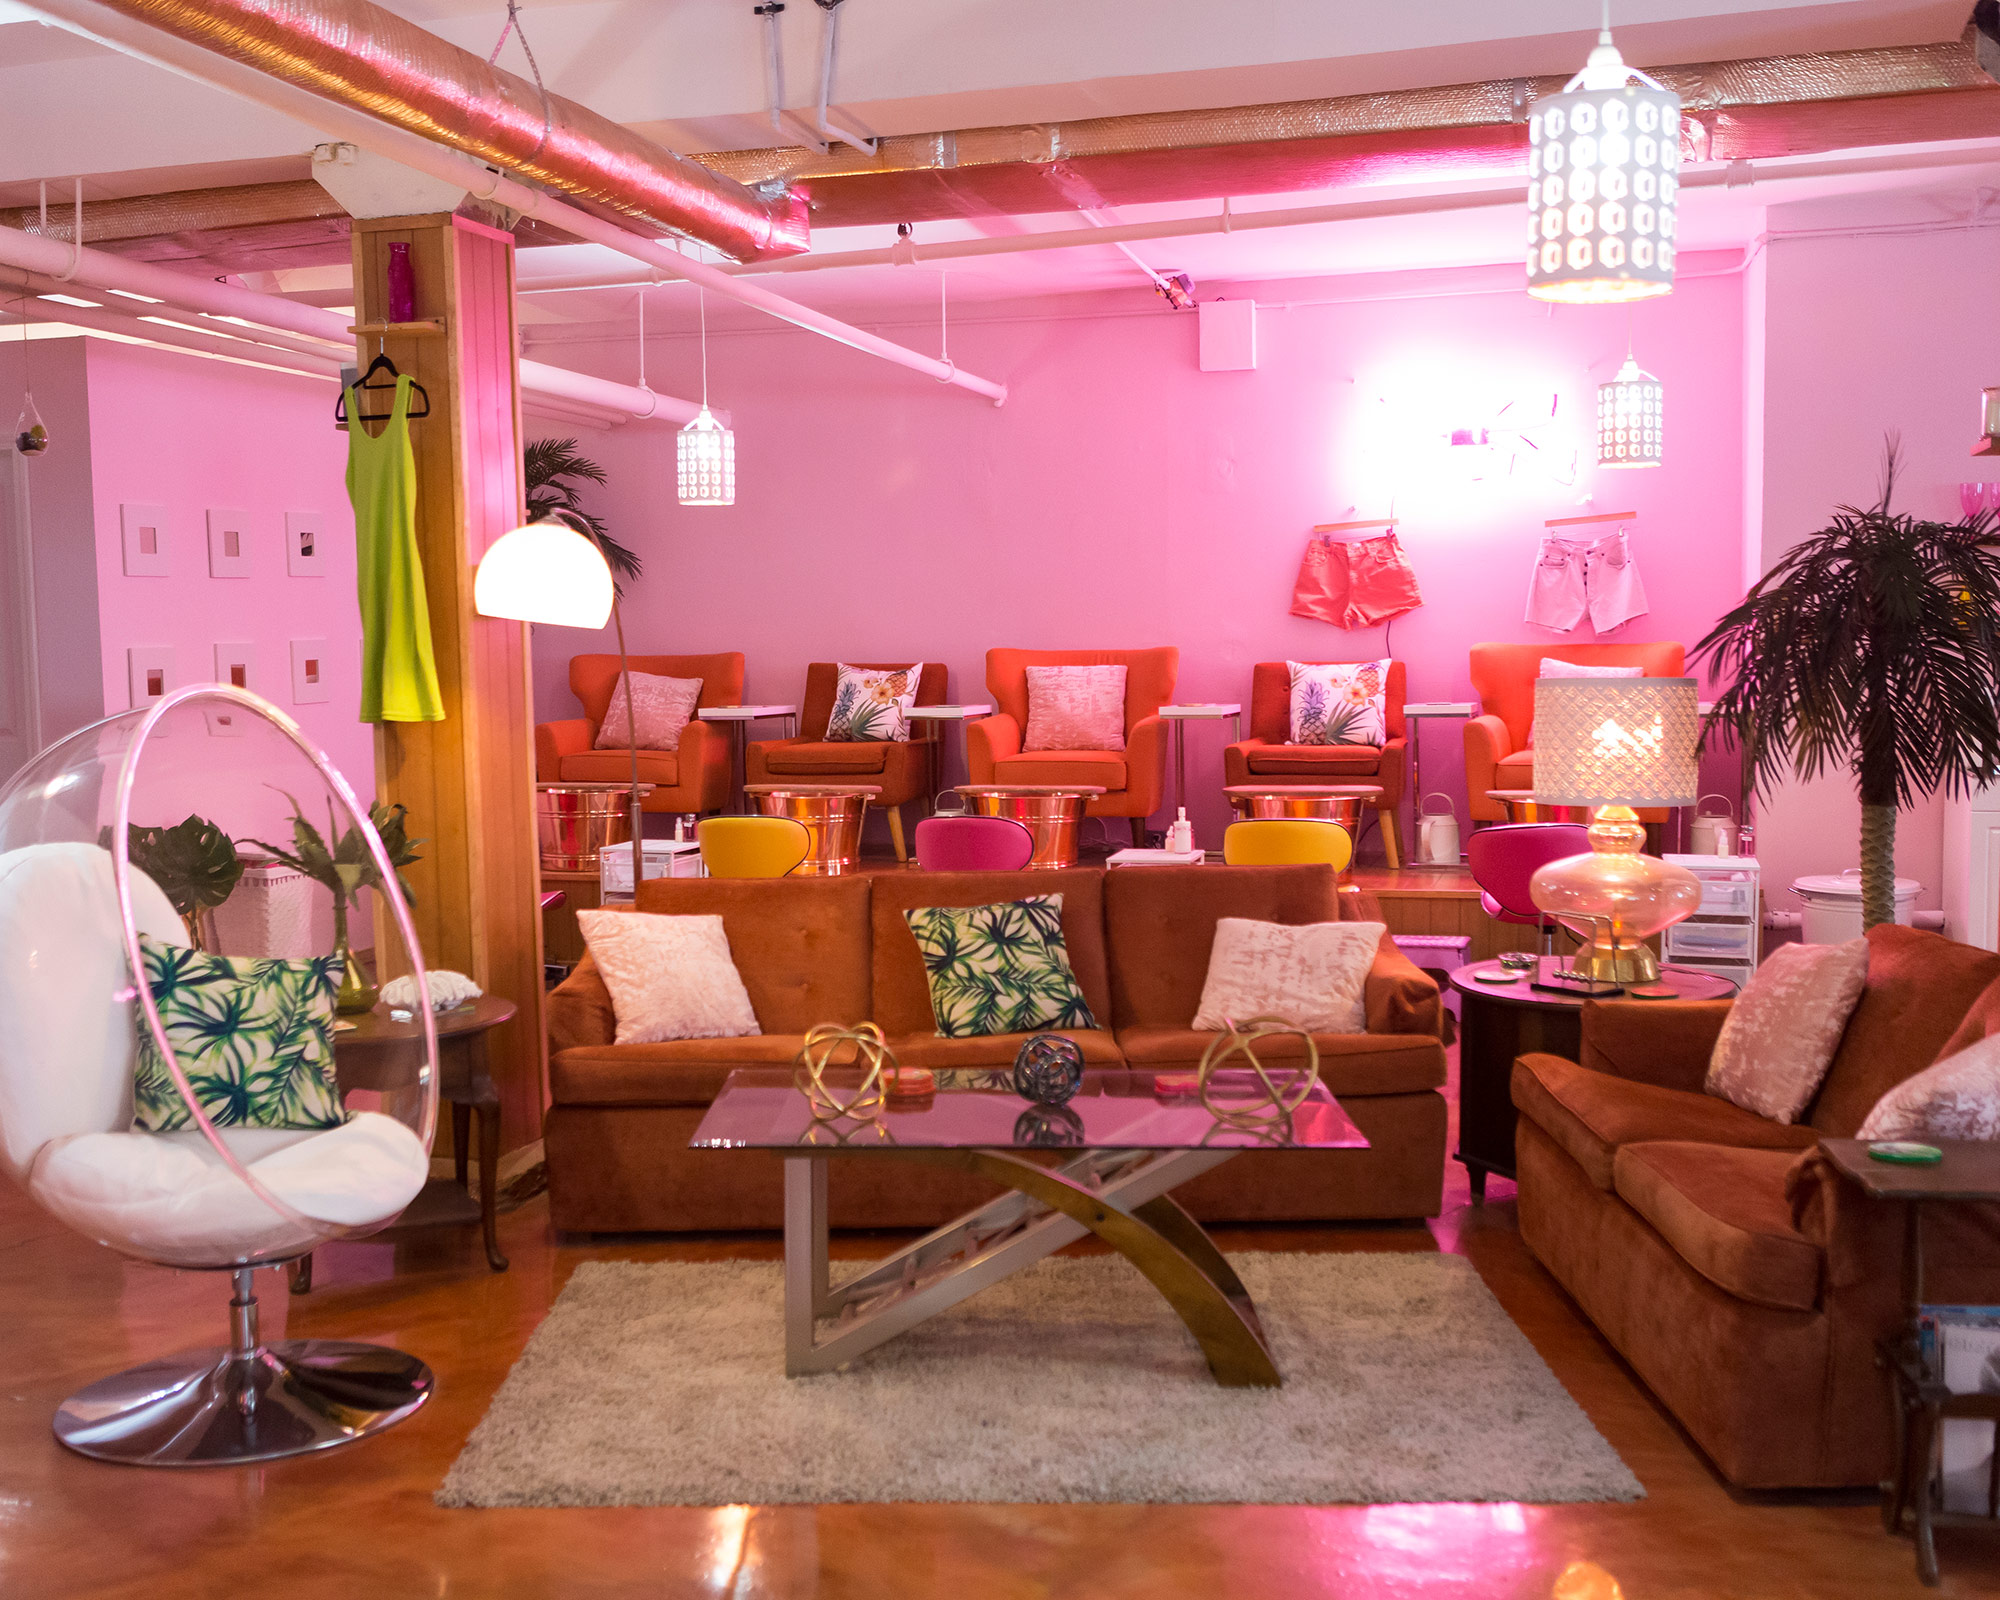 Introducing: Wild Oleander, Bushwick's Newest, Neon-est Nail Salon And Spa - Written by Jennifer Picht | Photography by Raydene Salinas